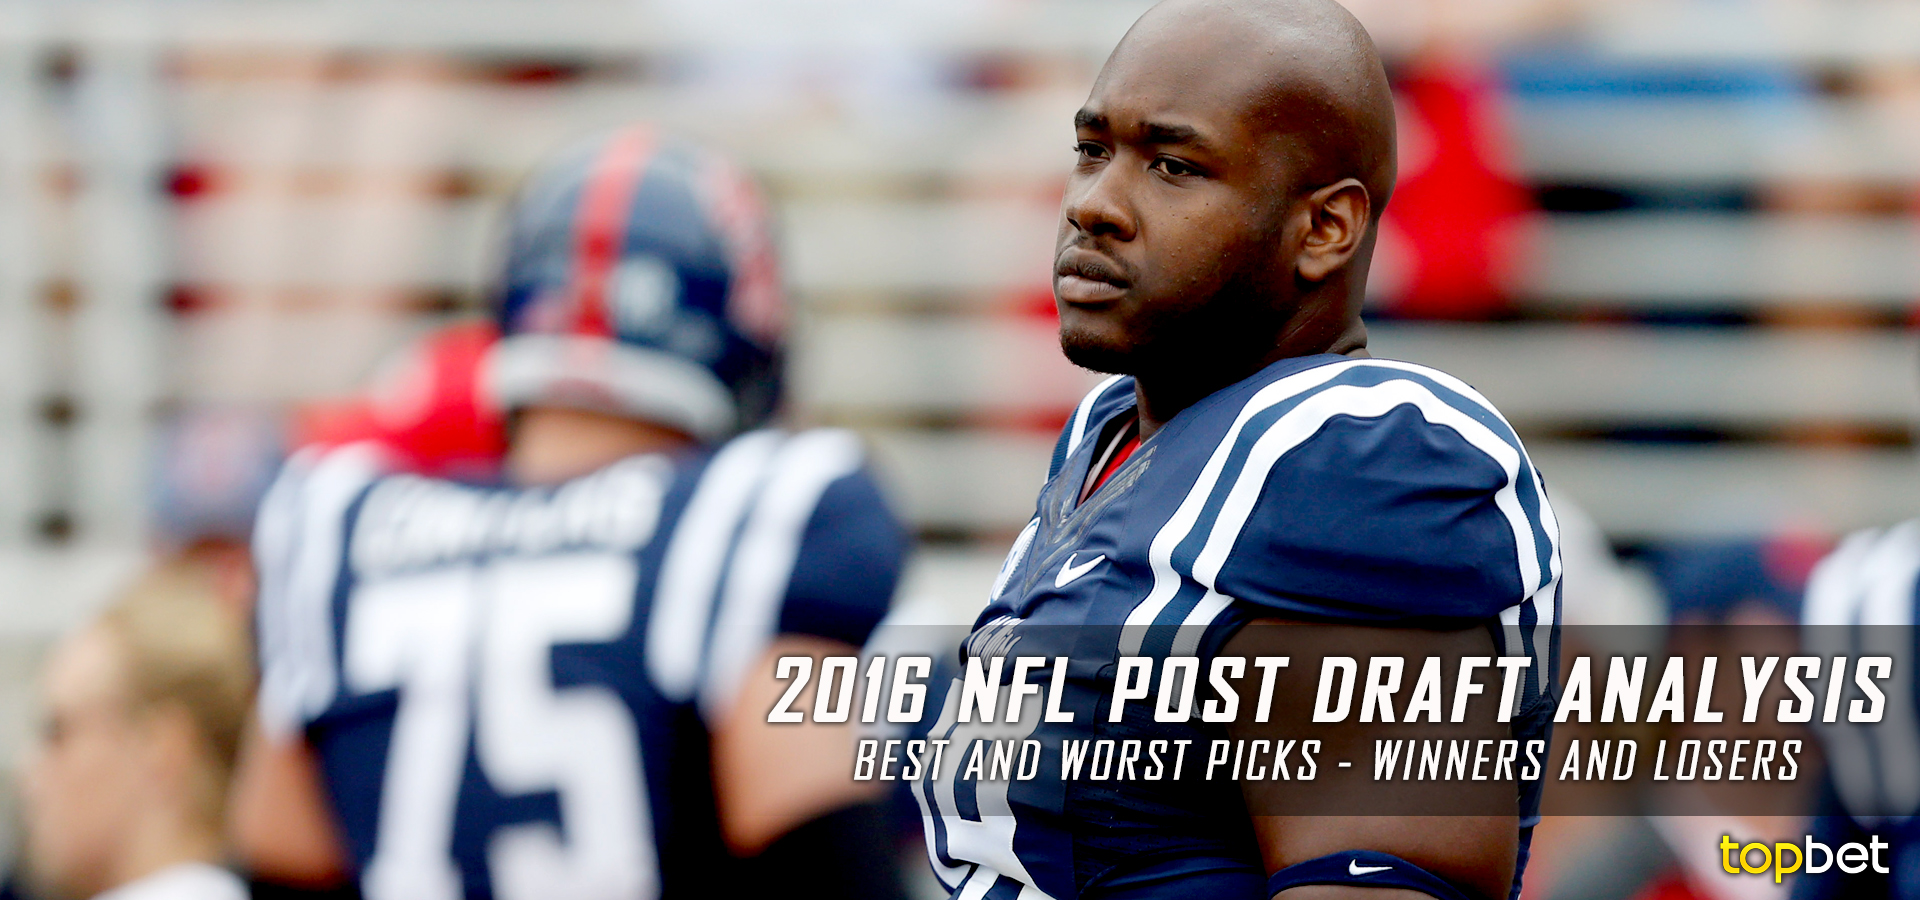 2016 NFL Post Draft Analysis - Best and Worst Picks